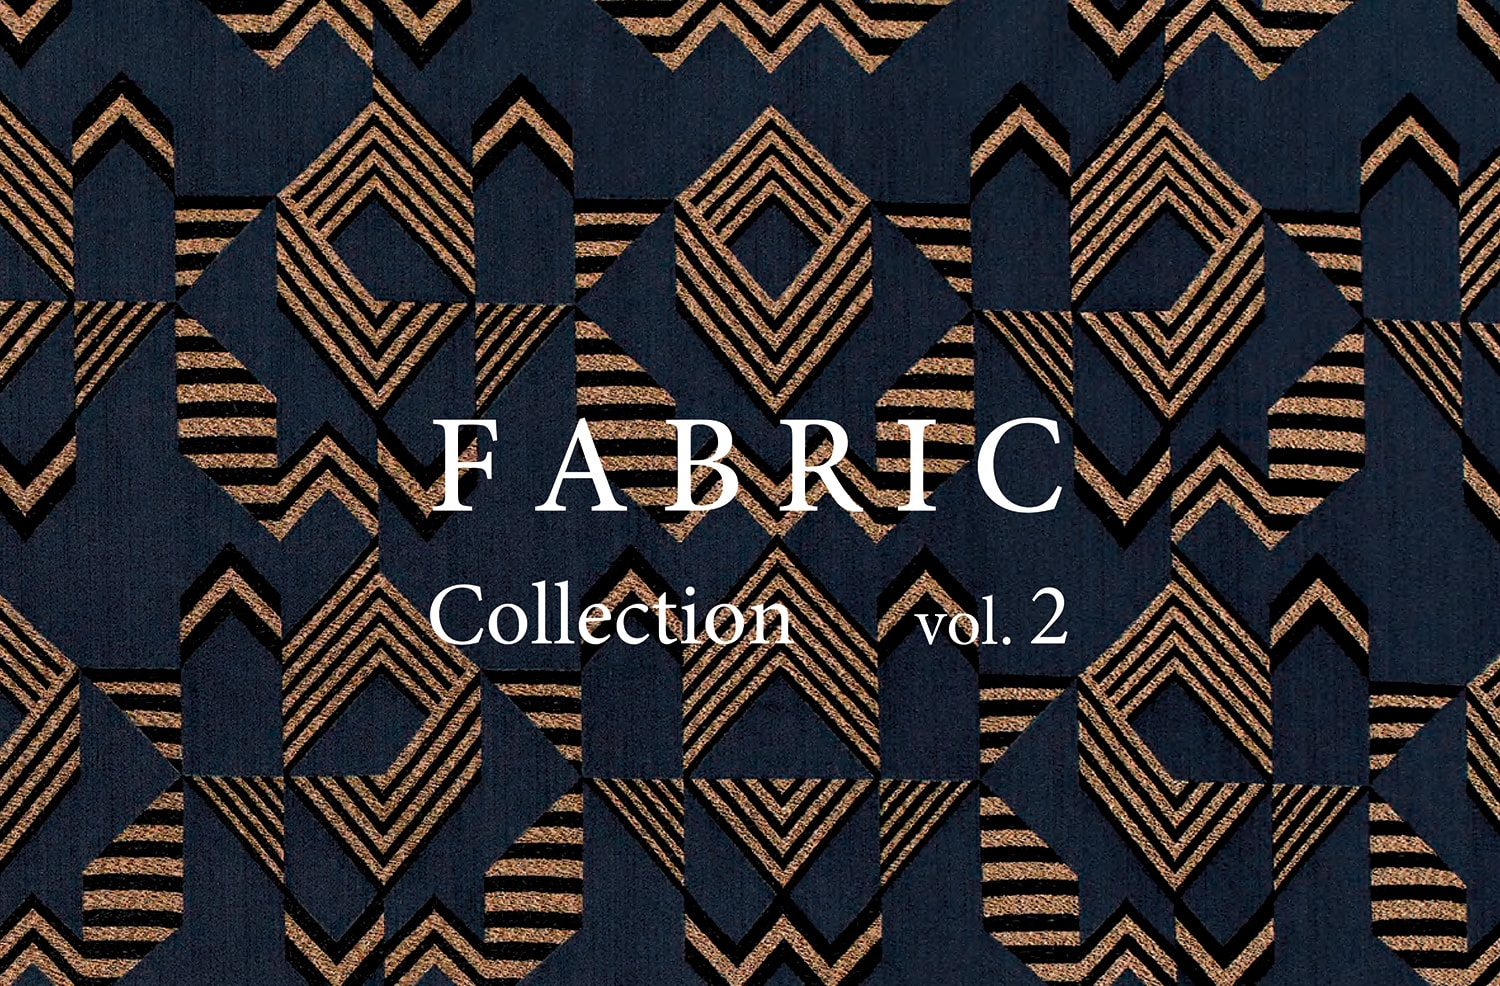 Fabric Collection vol.2